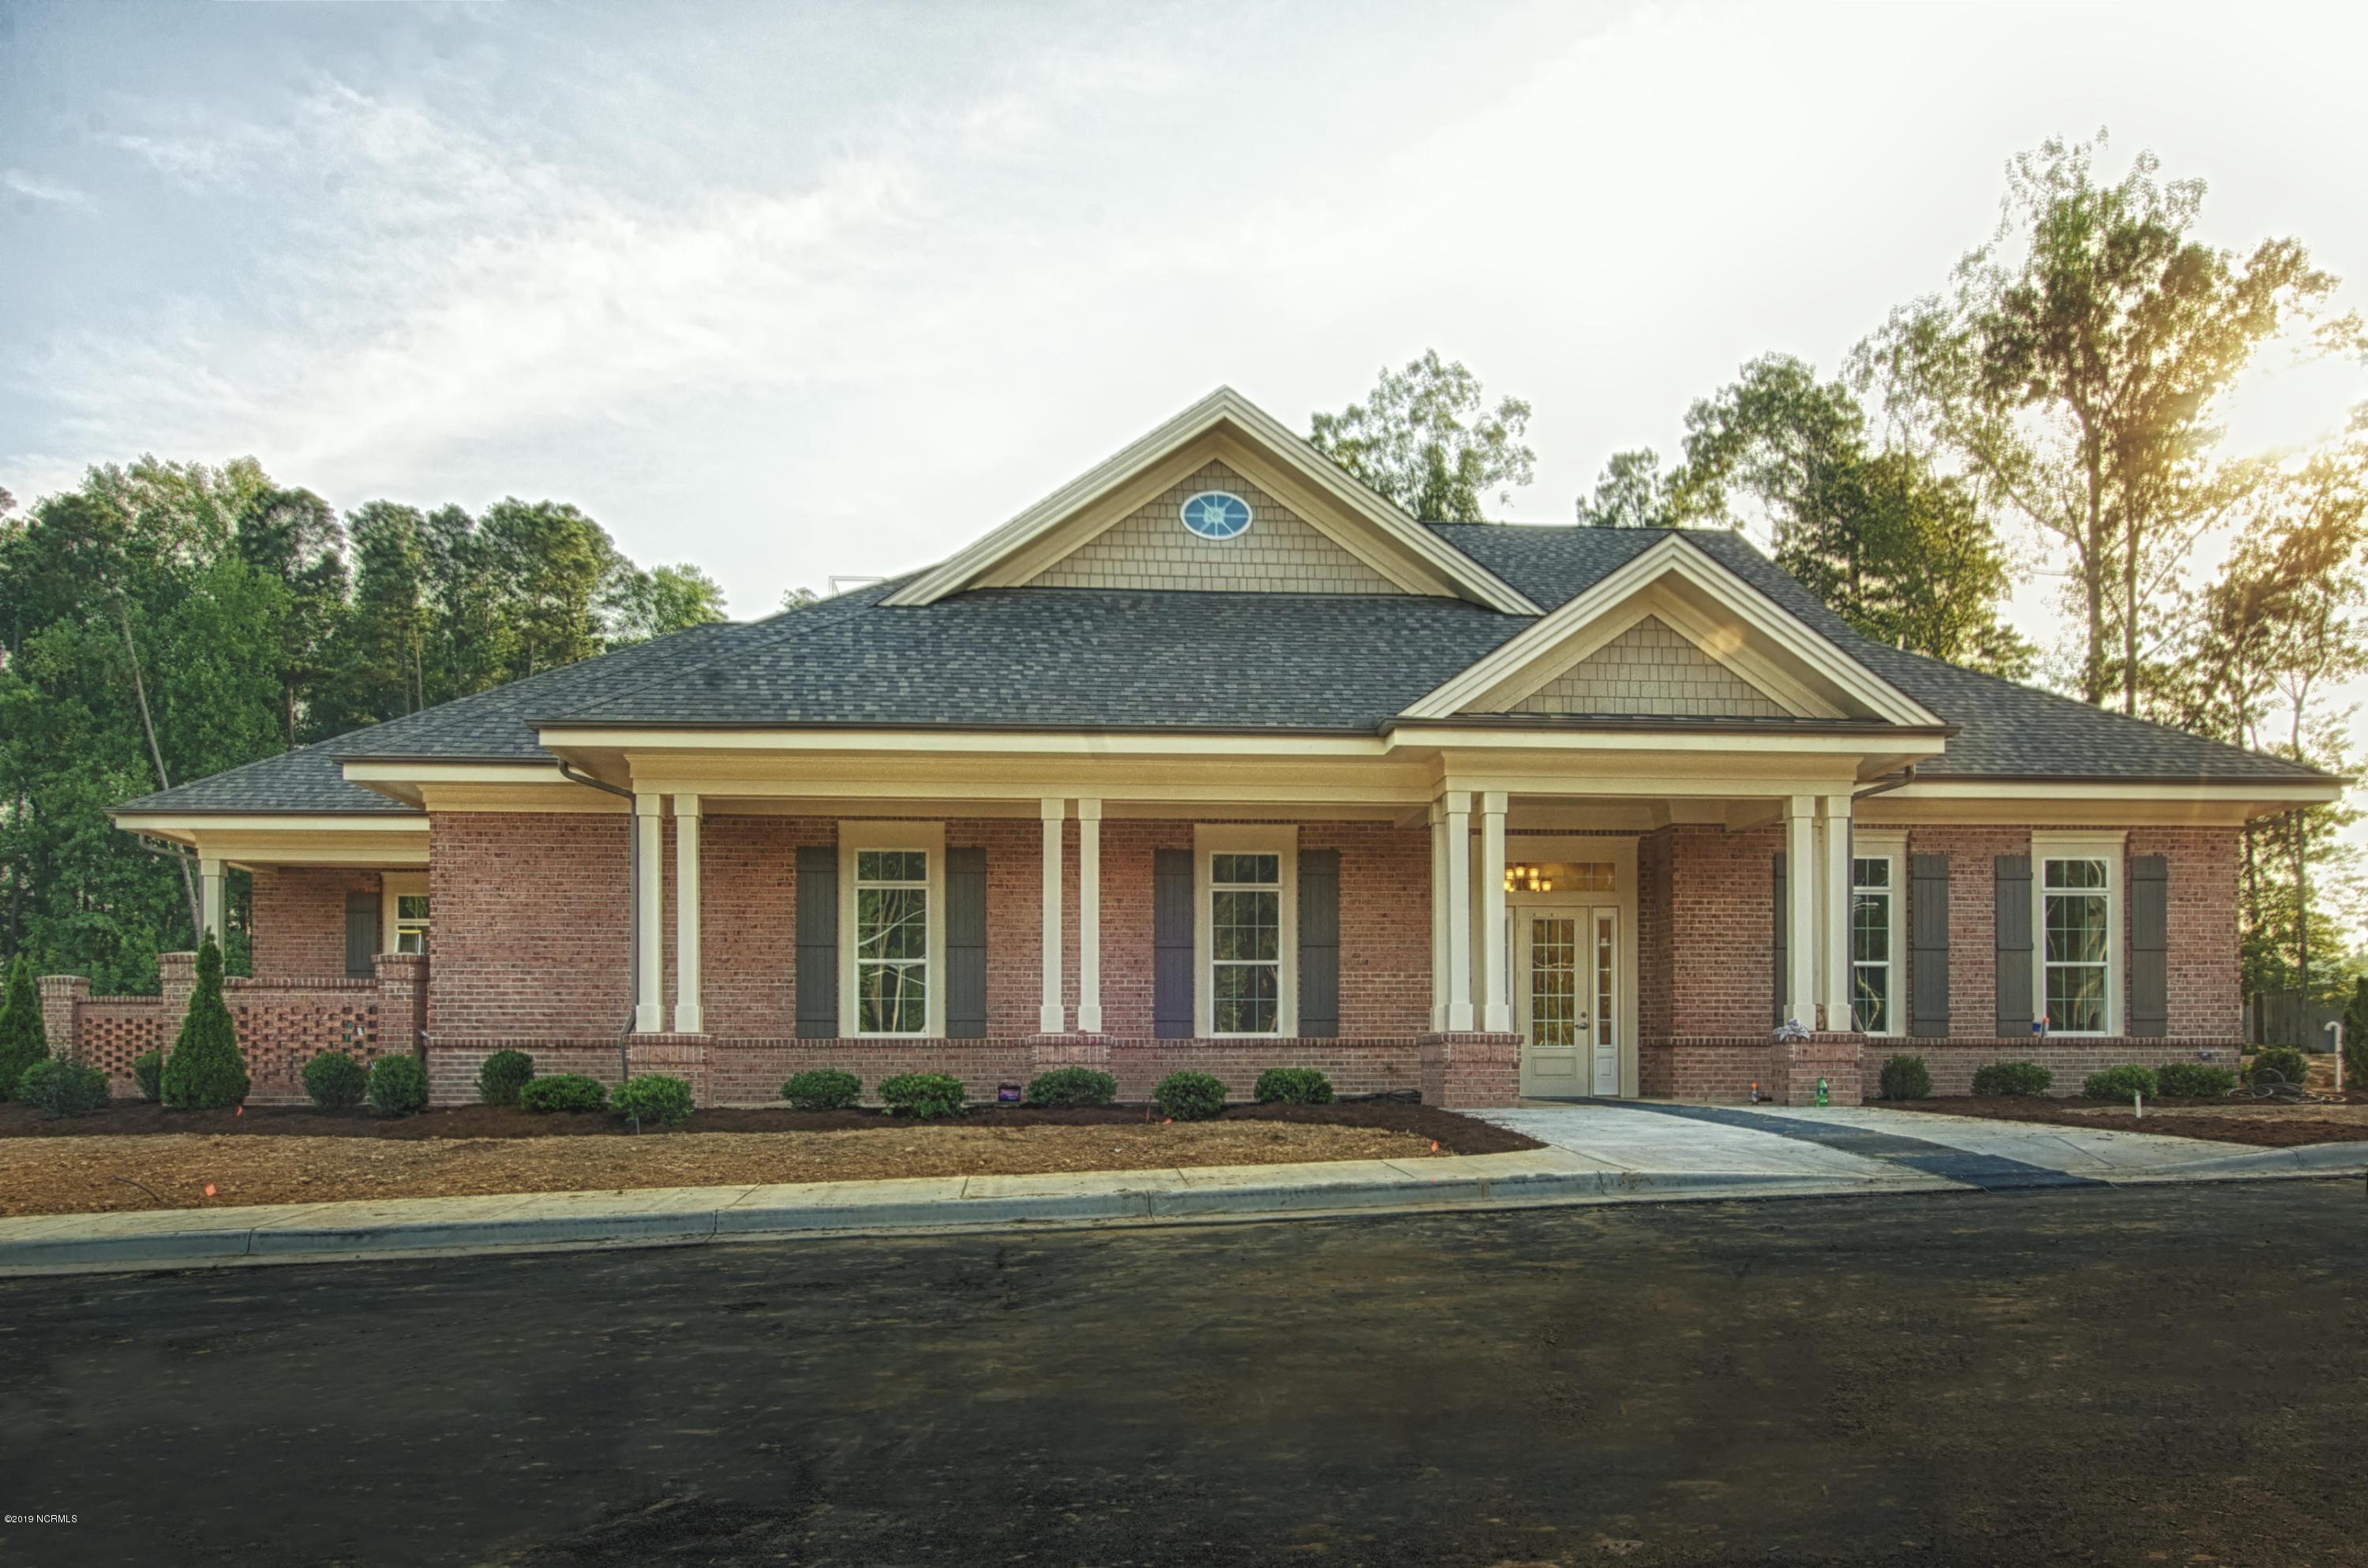 654 Chimney Hill Way, Rocky Mount, North Carolina 27804, ,Residential land,For sale,Chimney Hill,100193299